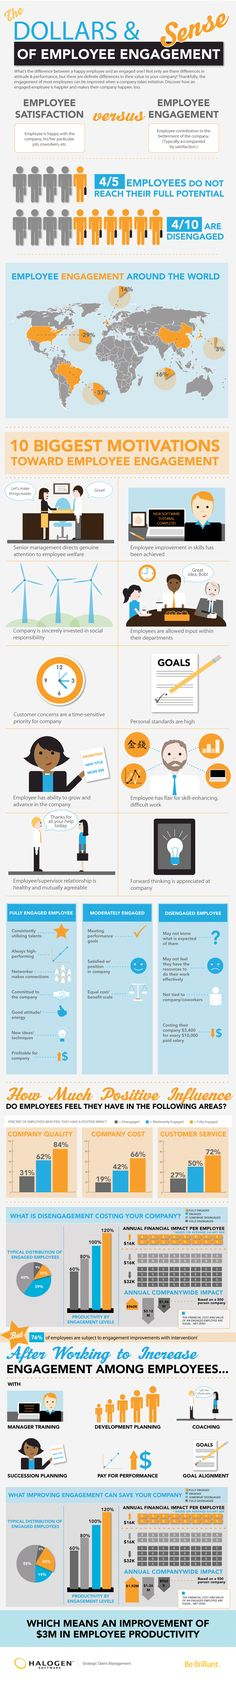 Employment Engagement Methods and Drivers for Strategic Employee Engagement